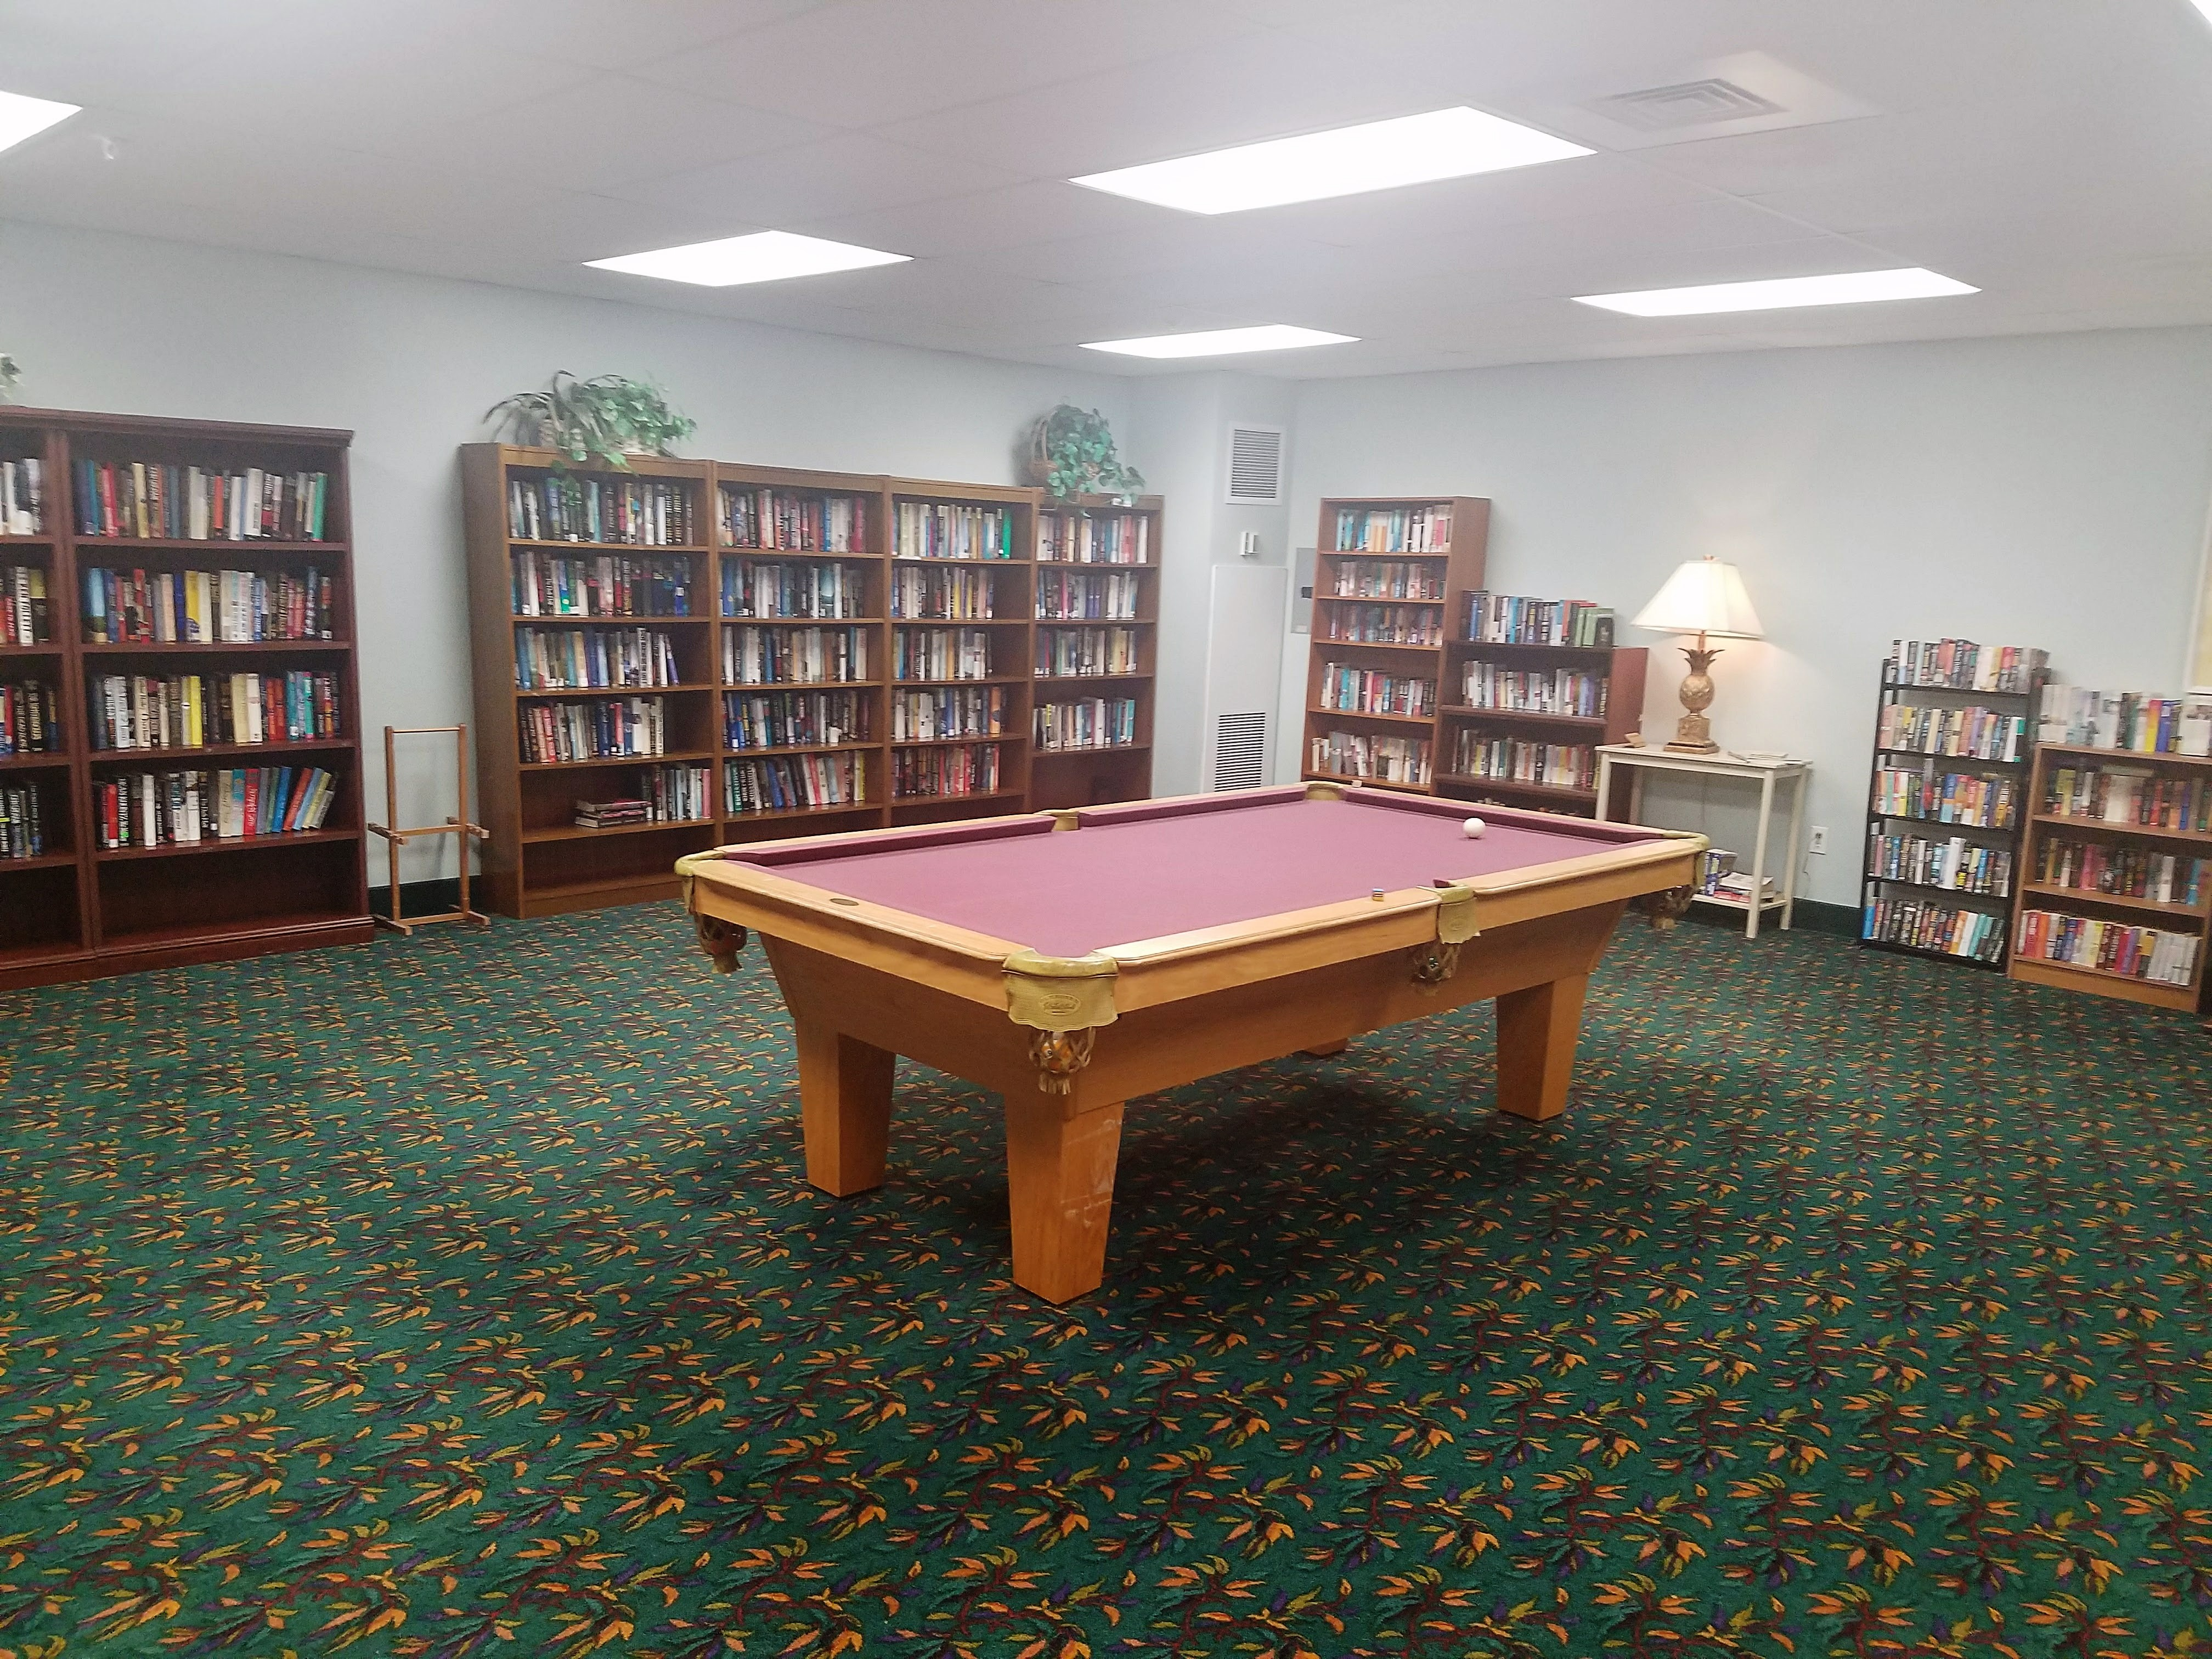 Our pool table and Library